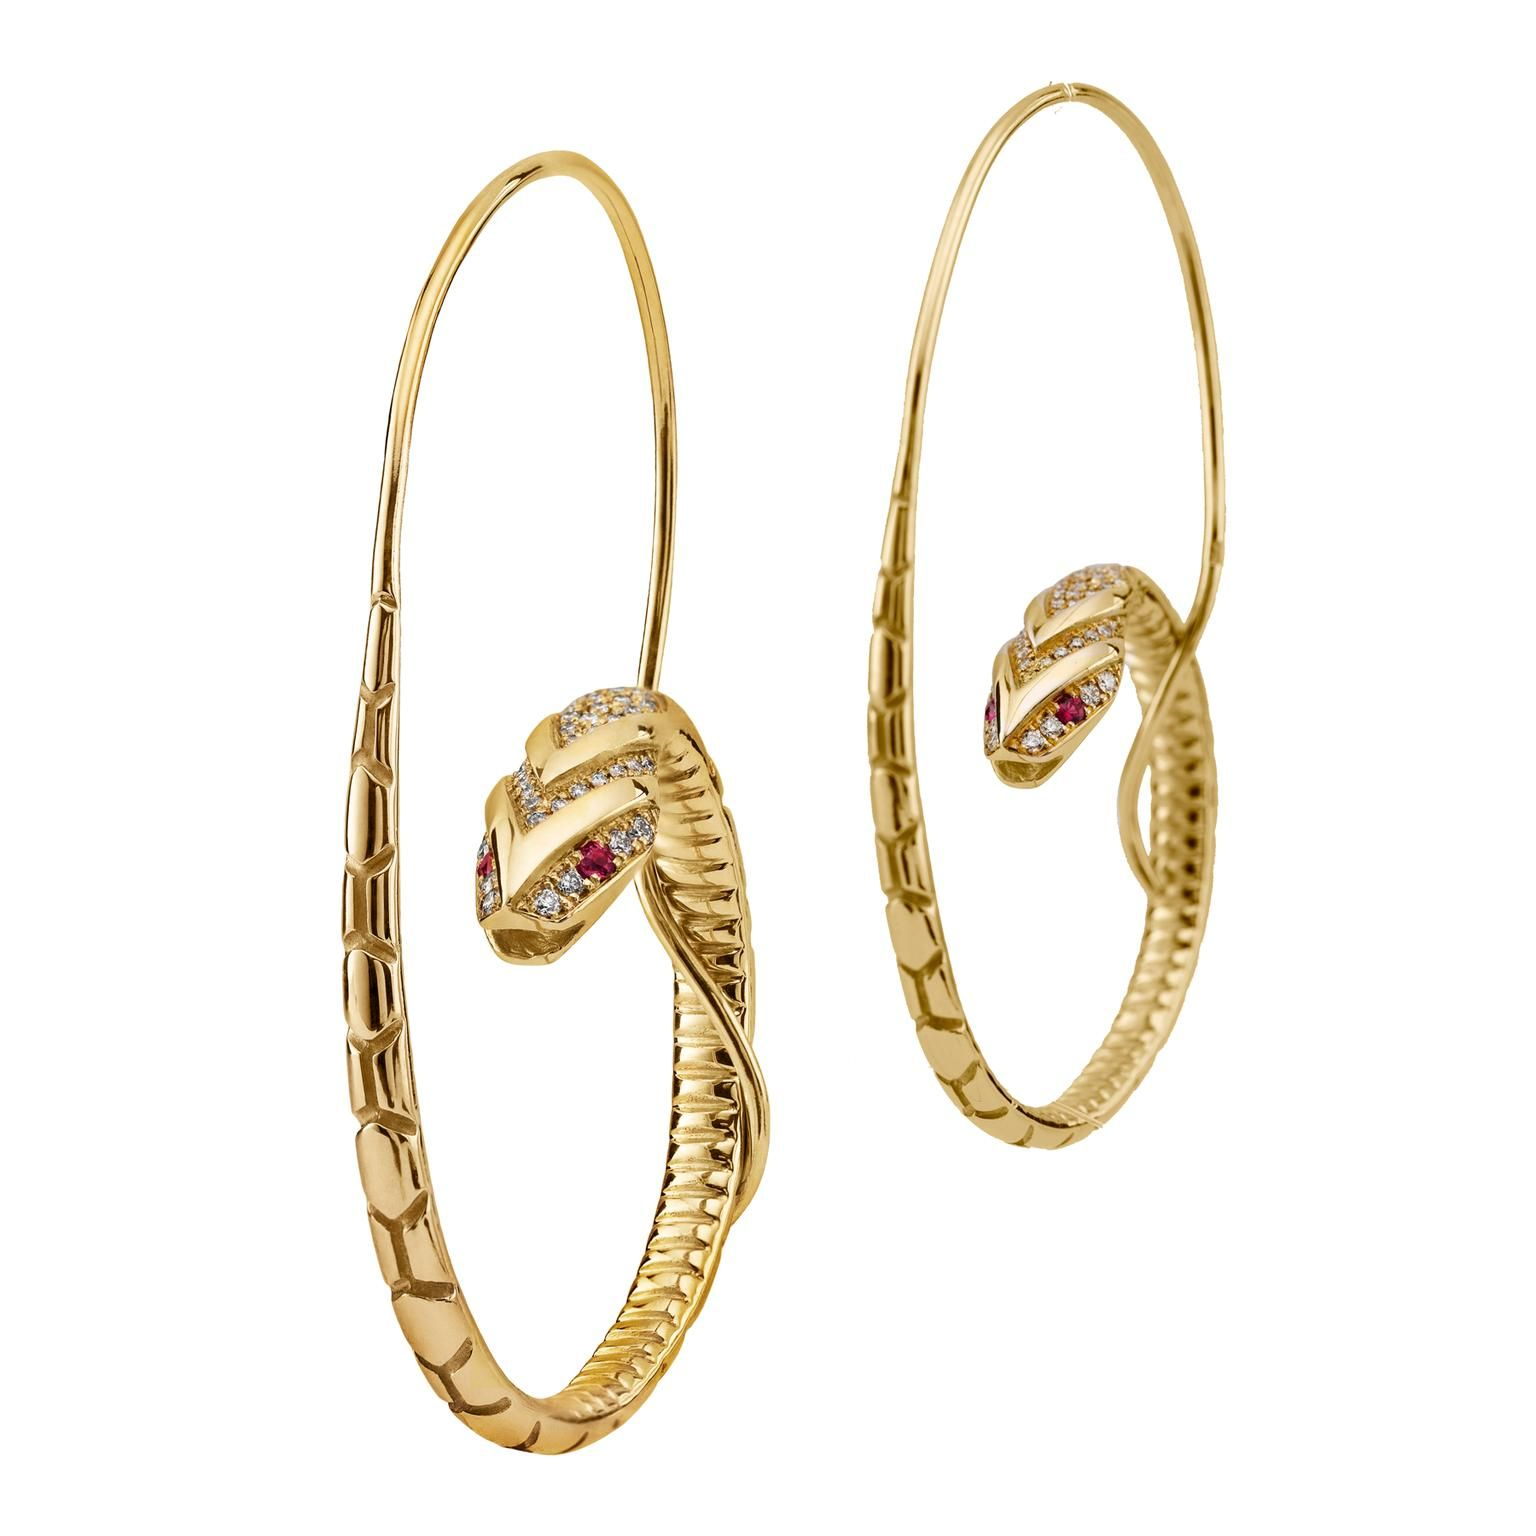 Wonders of Nature gold snake hoop earrings